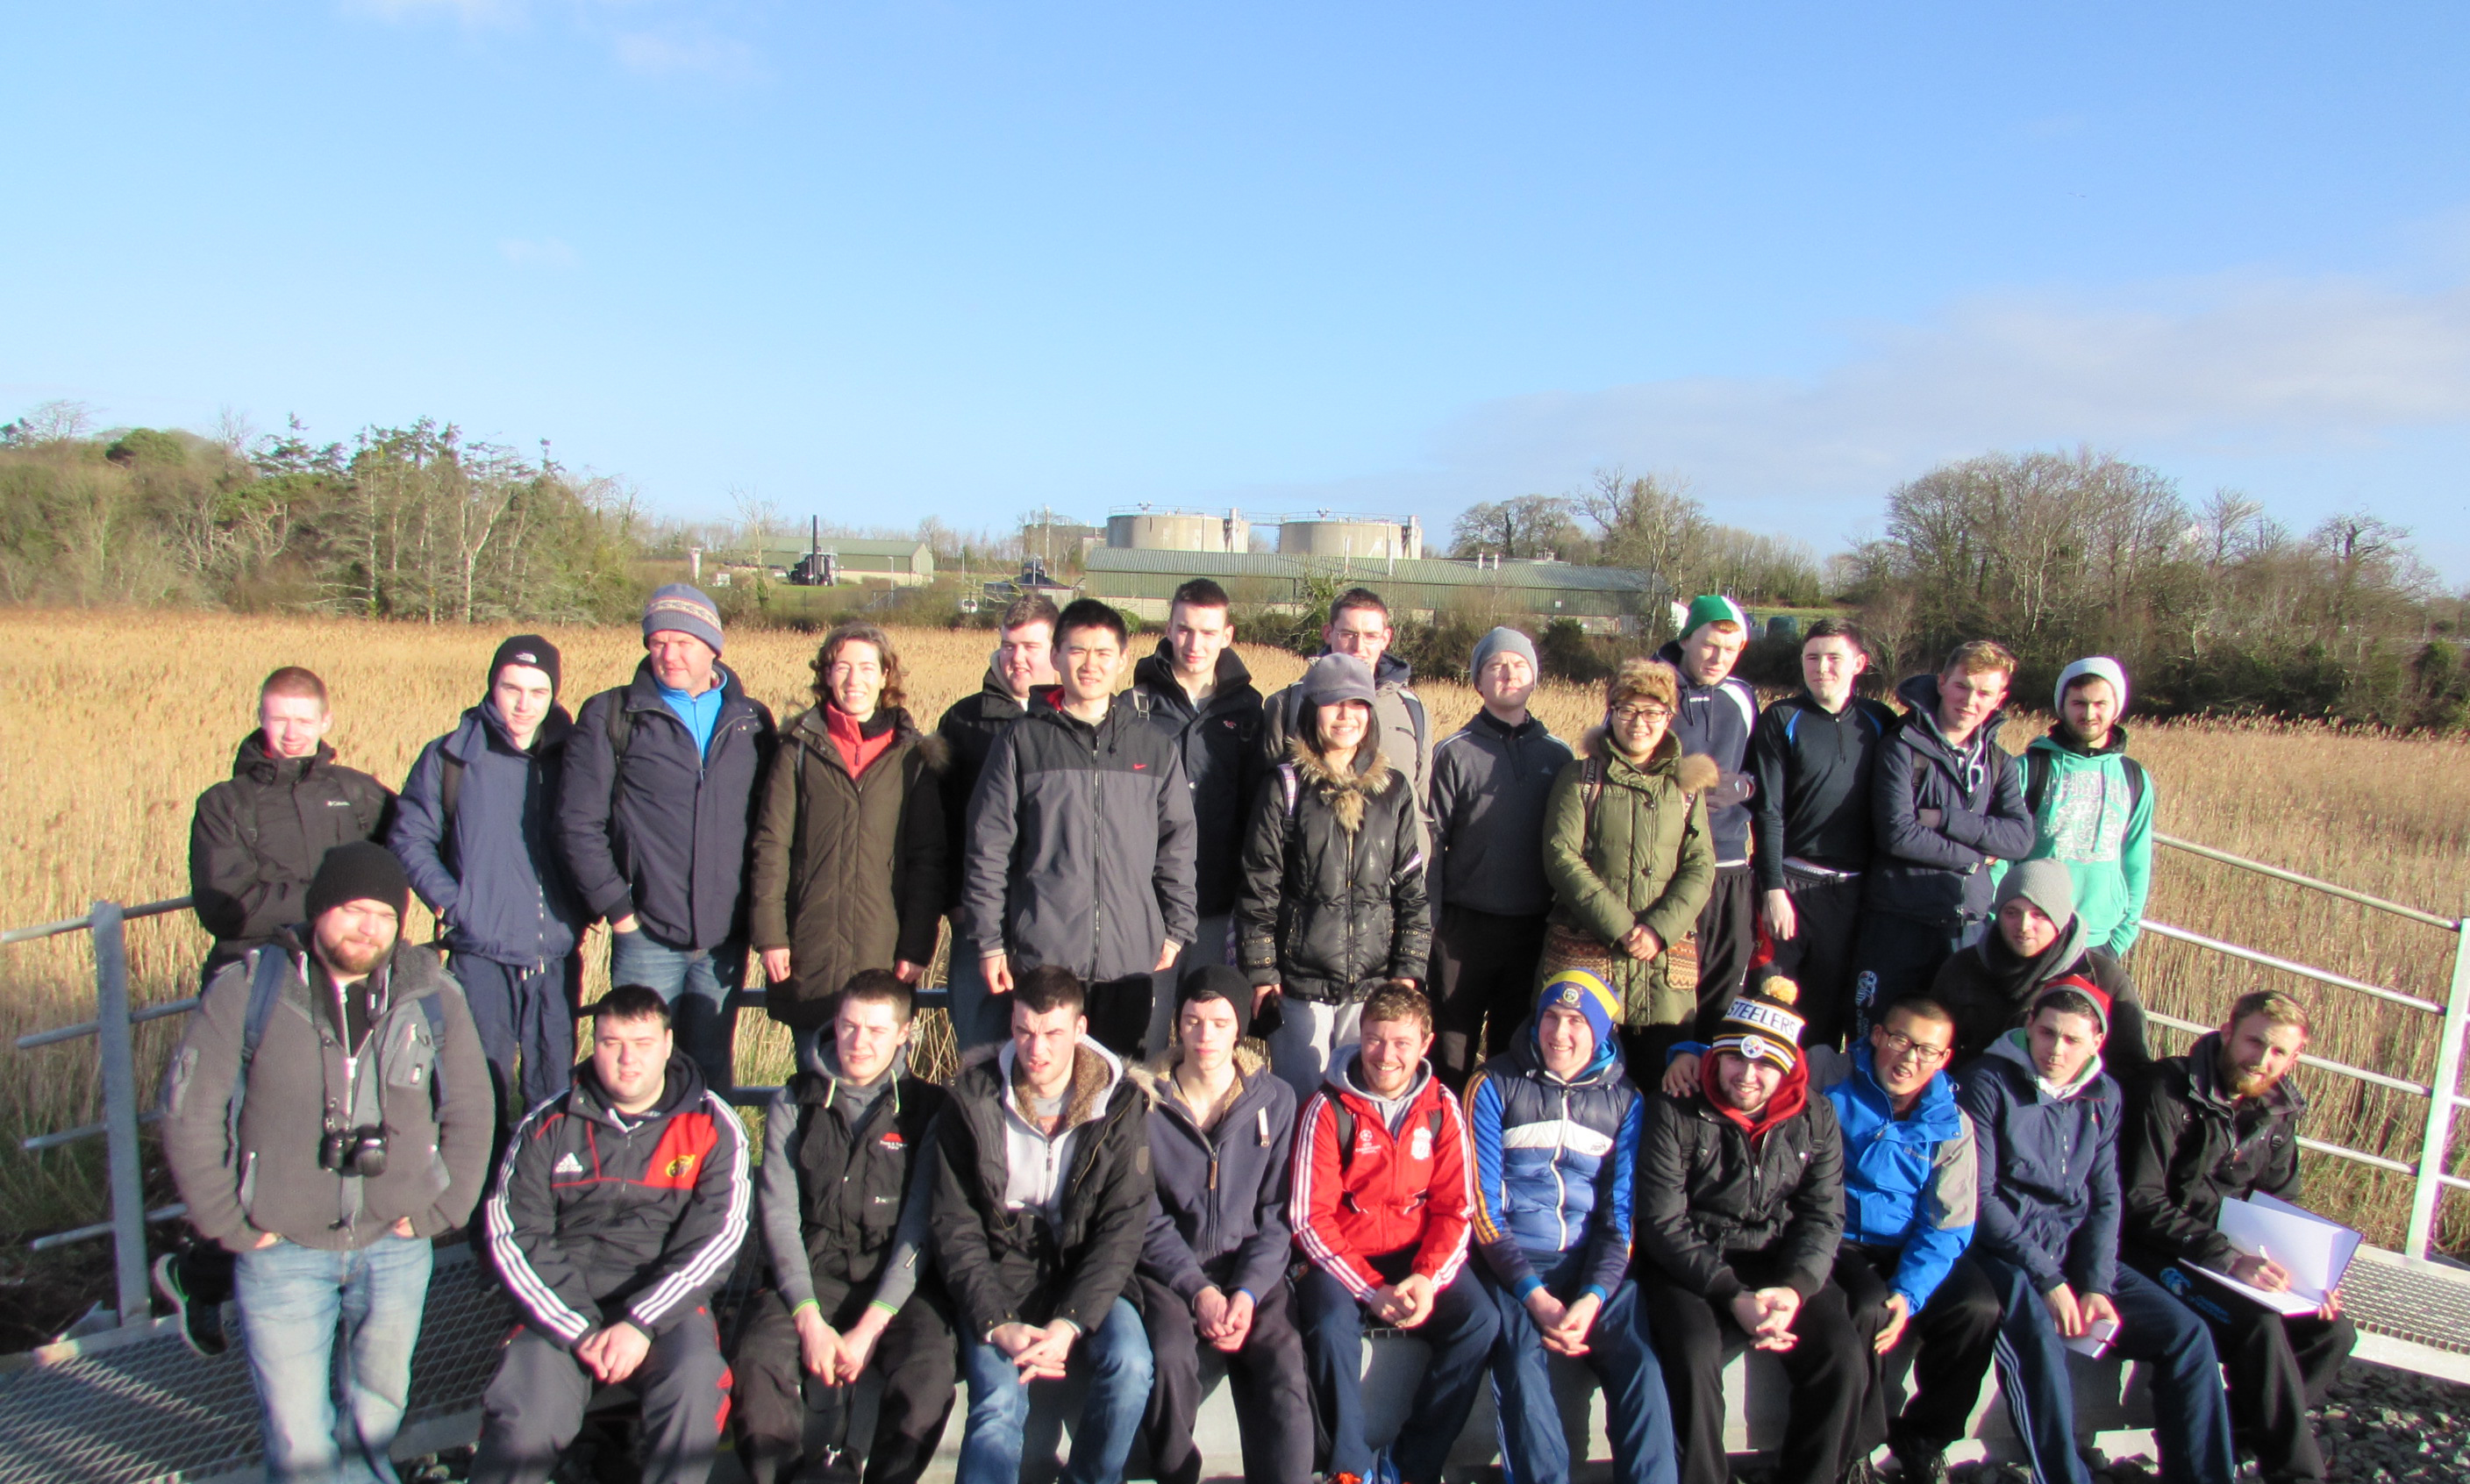 First and second year Construction Managment, Quantity Surveying and Civil Engineering students, along with lecturers John Carney, Tomás O'Donoghue and Susan Gallagher